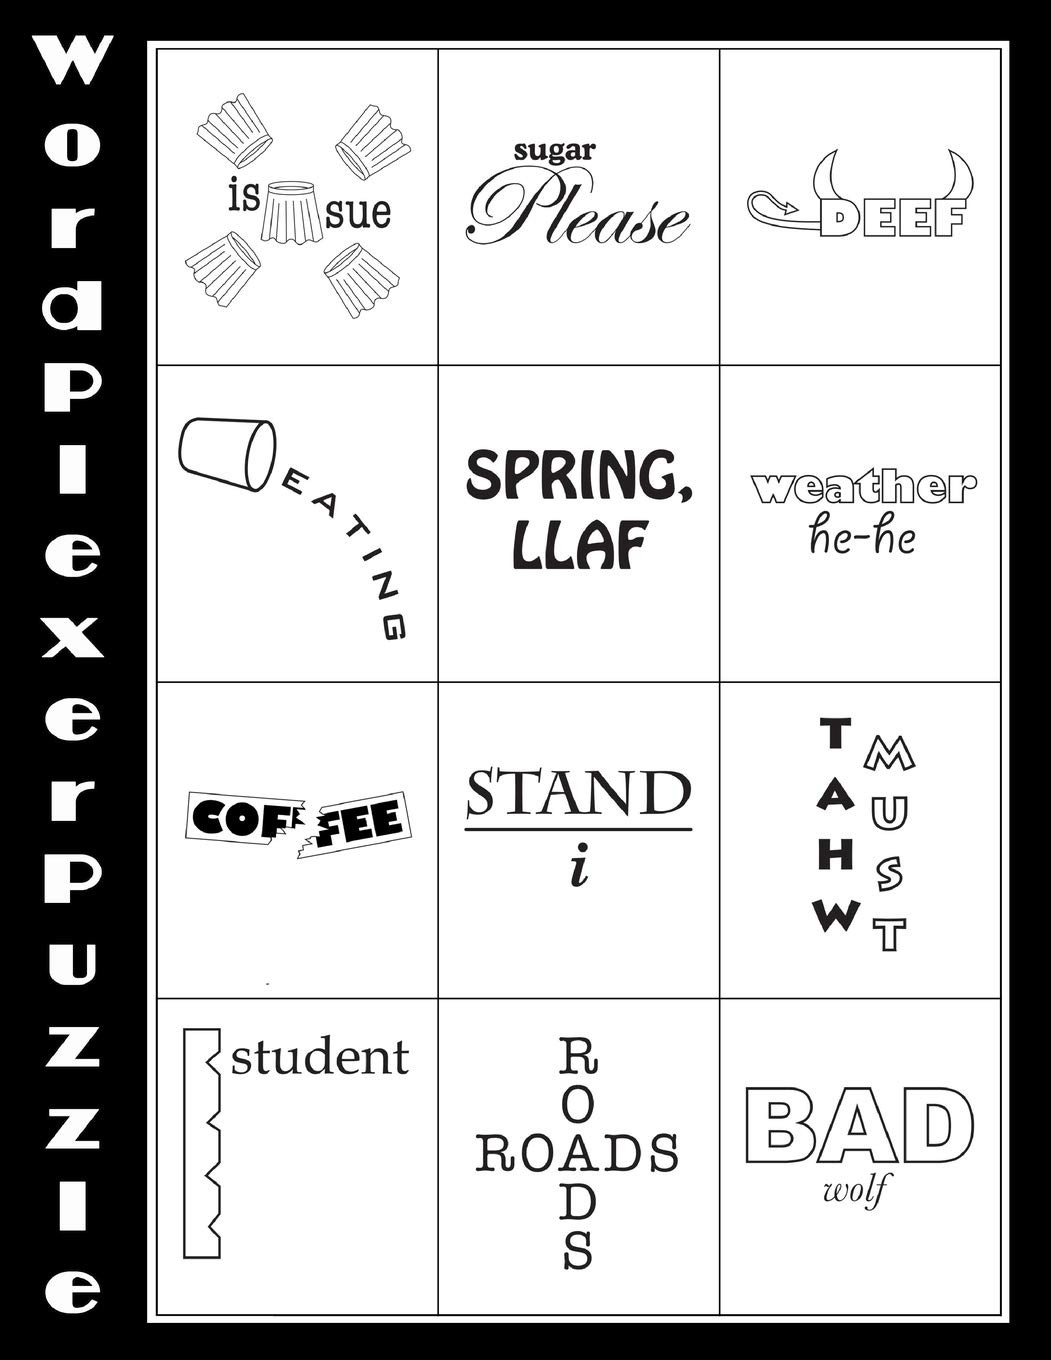 Free Printable Rebus Puzzles Word Plexer Puzzle Word Plexers are Word Based Puzzles that